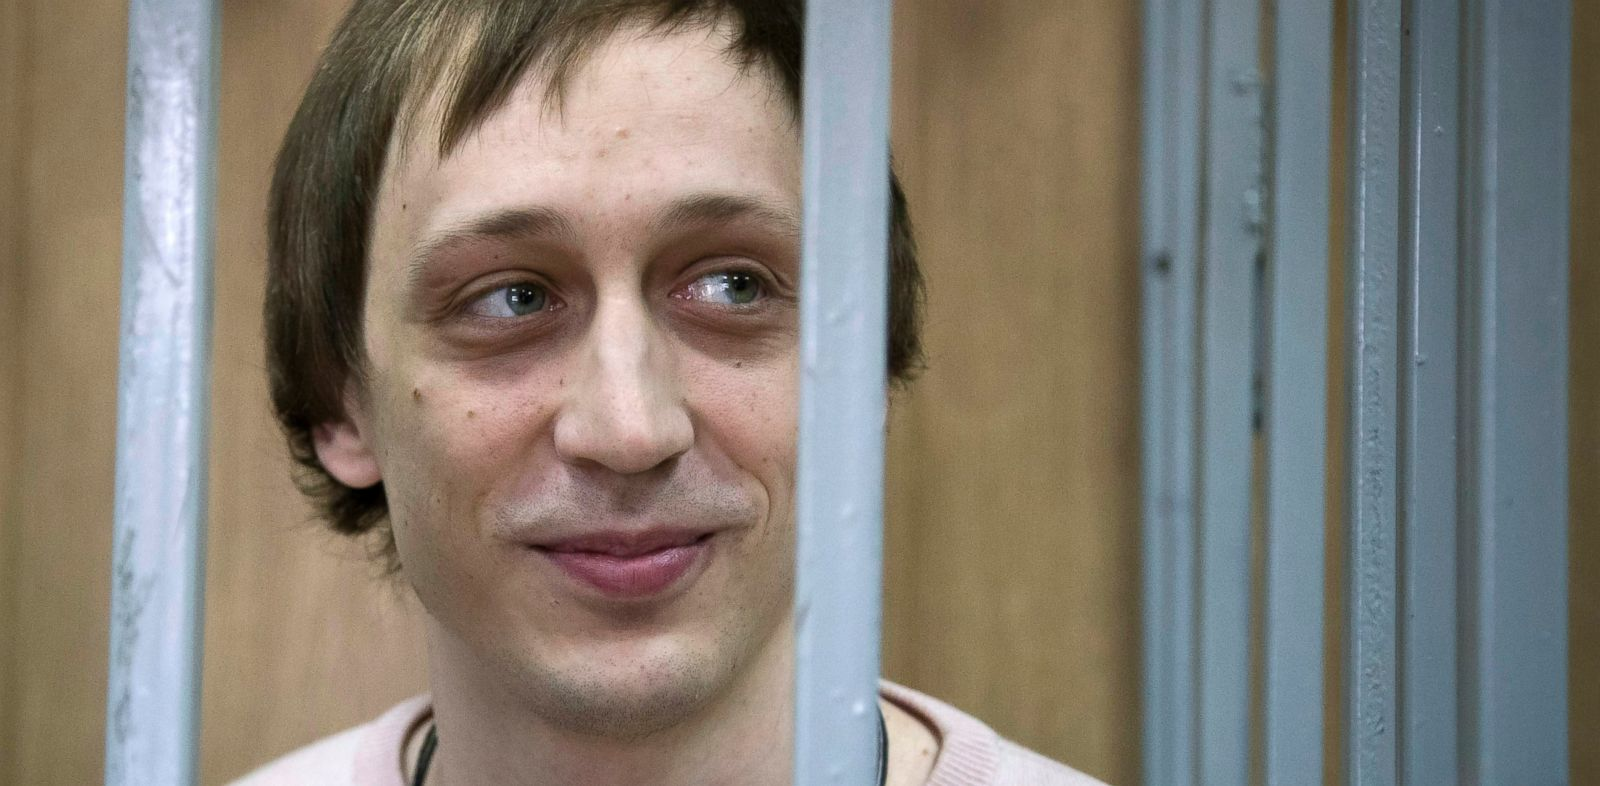 PHOTO: Pavel Dmitrichenko stands inside a barred enclosure at a courtroom in Moscow, Russia